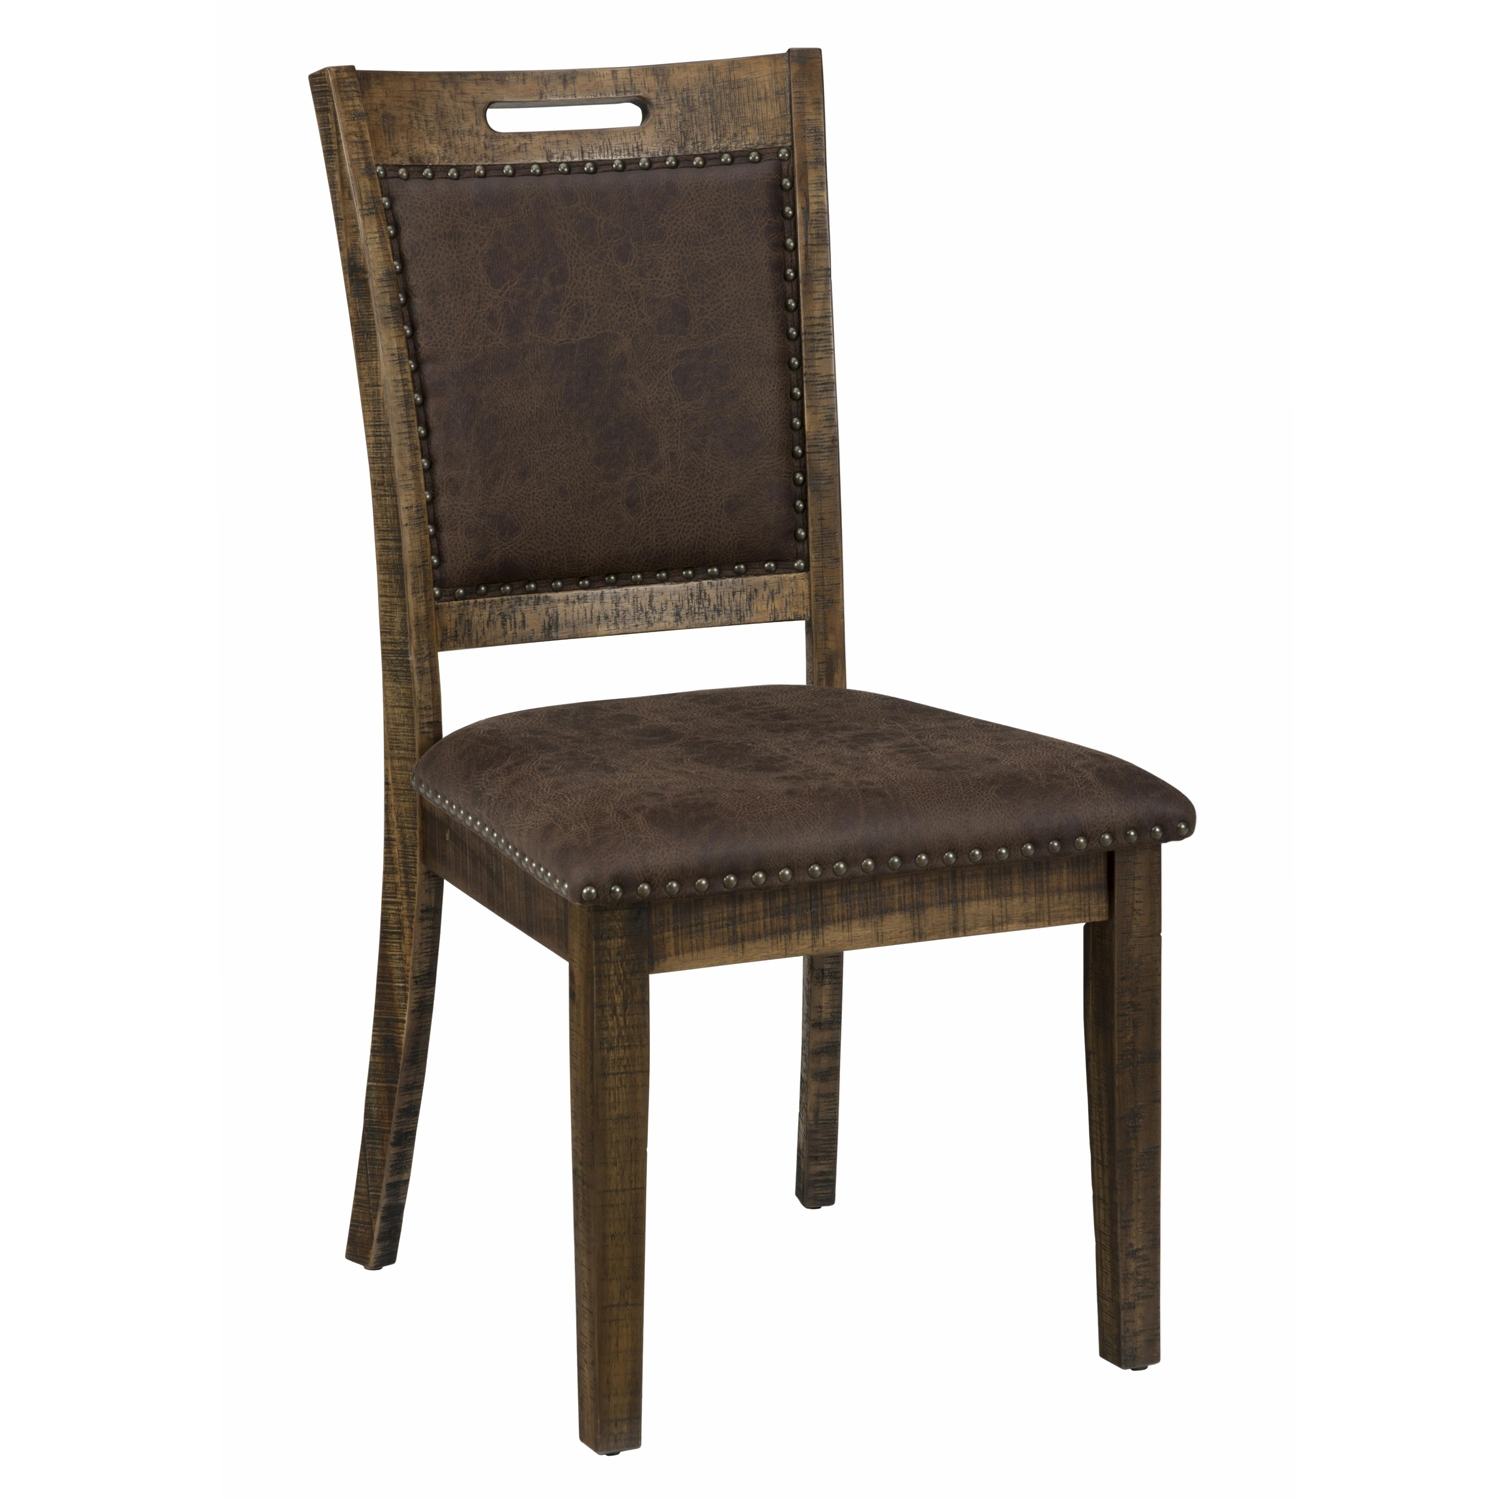 Cannon Valley Upholstered Back Dining Chair - JOFR-1511-380KD